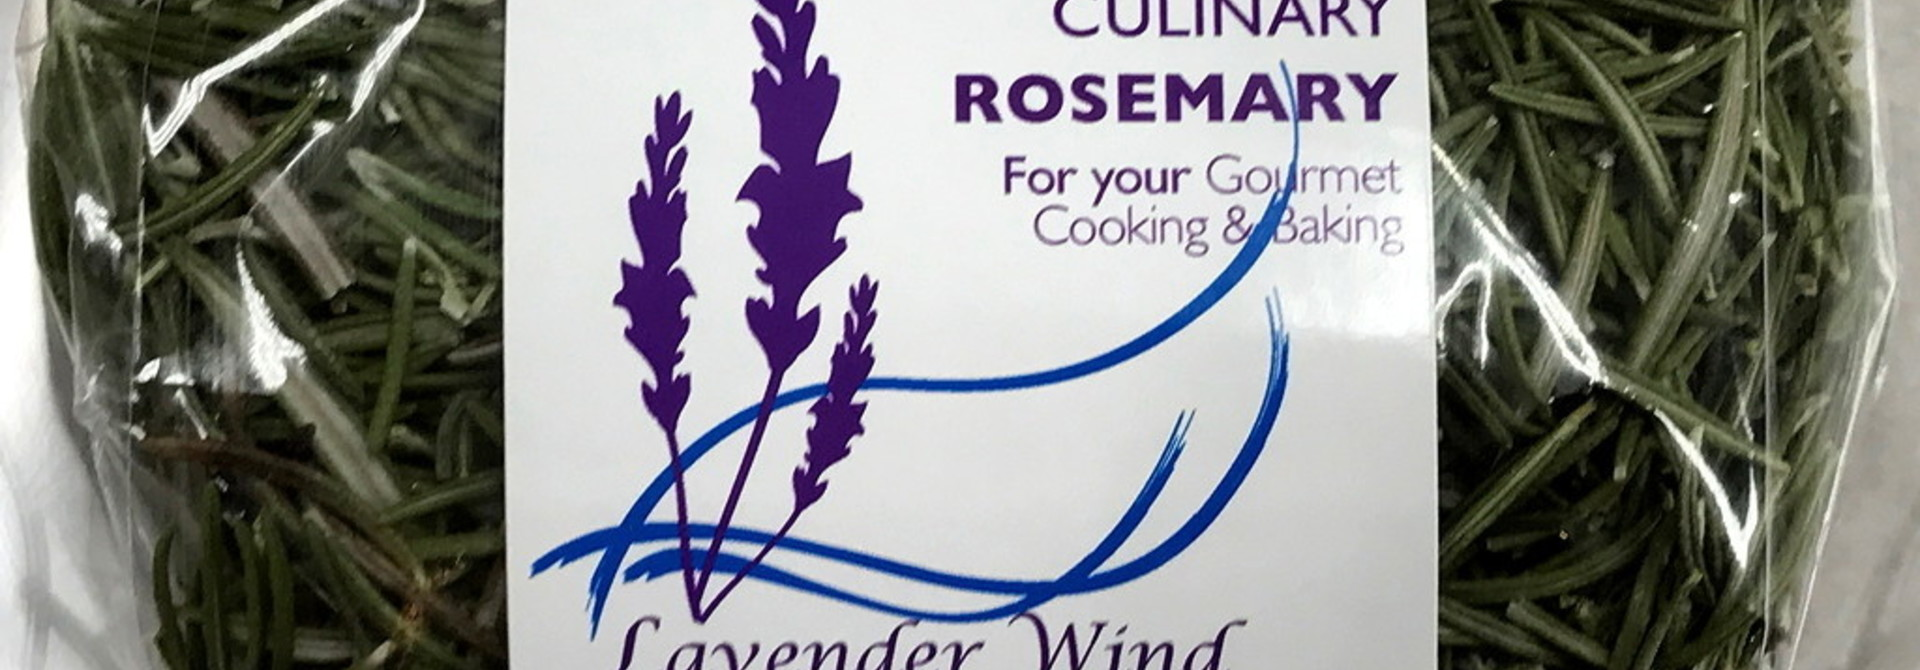 Whole Culinary Rosemary